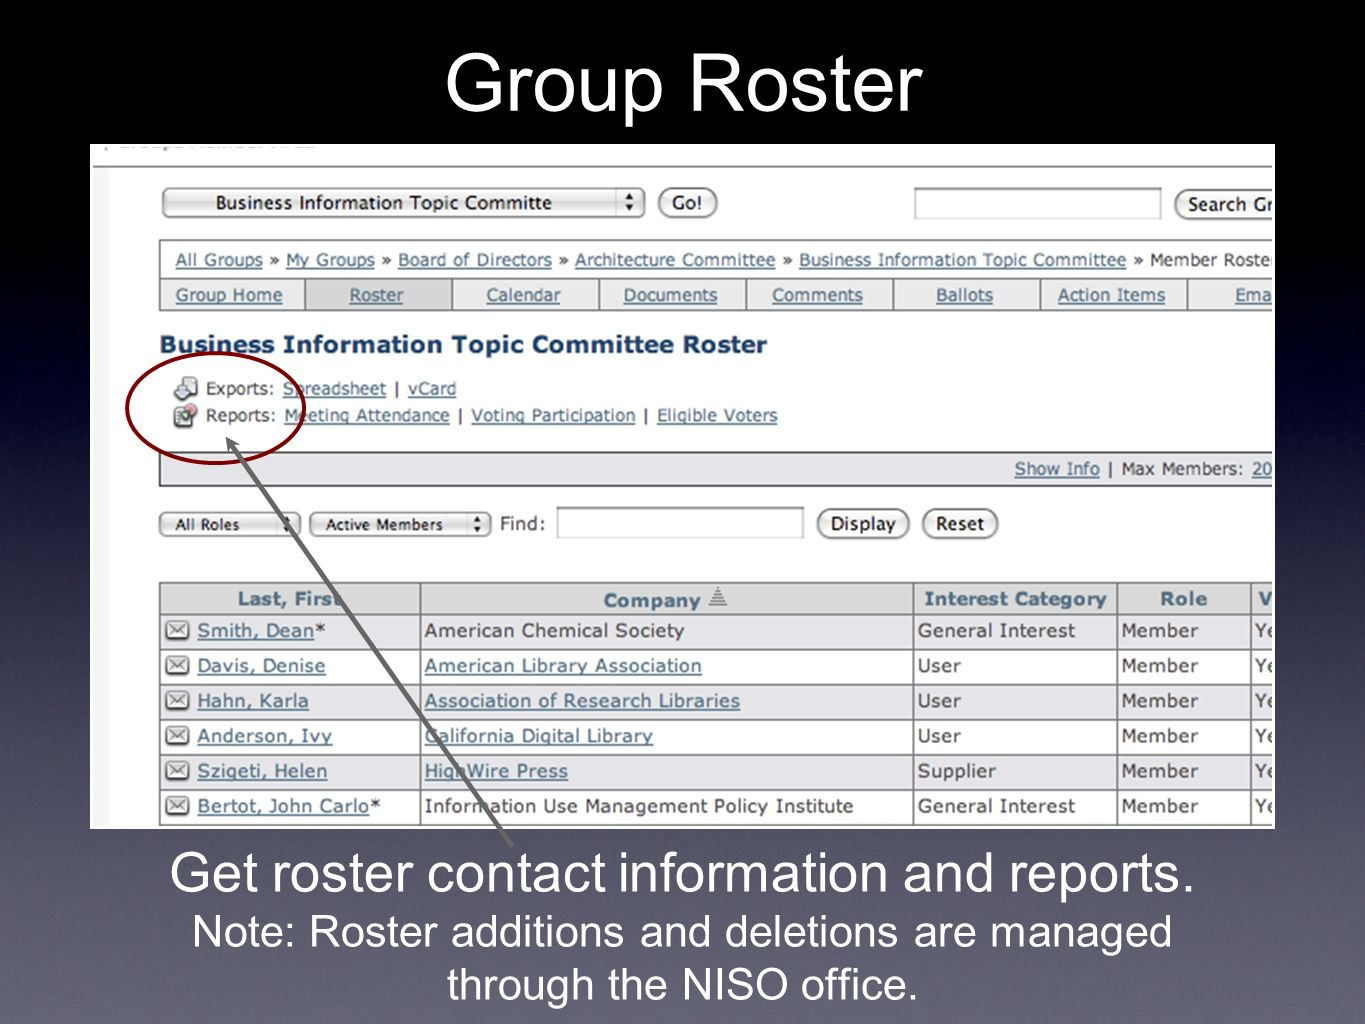 Get roster contact information and reports.